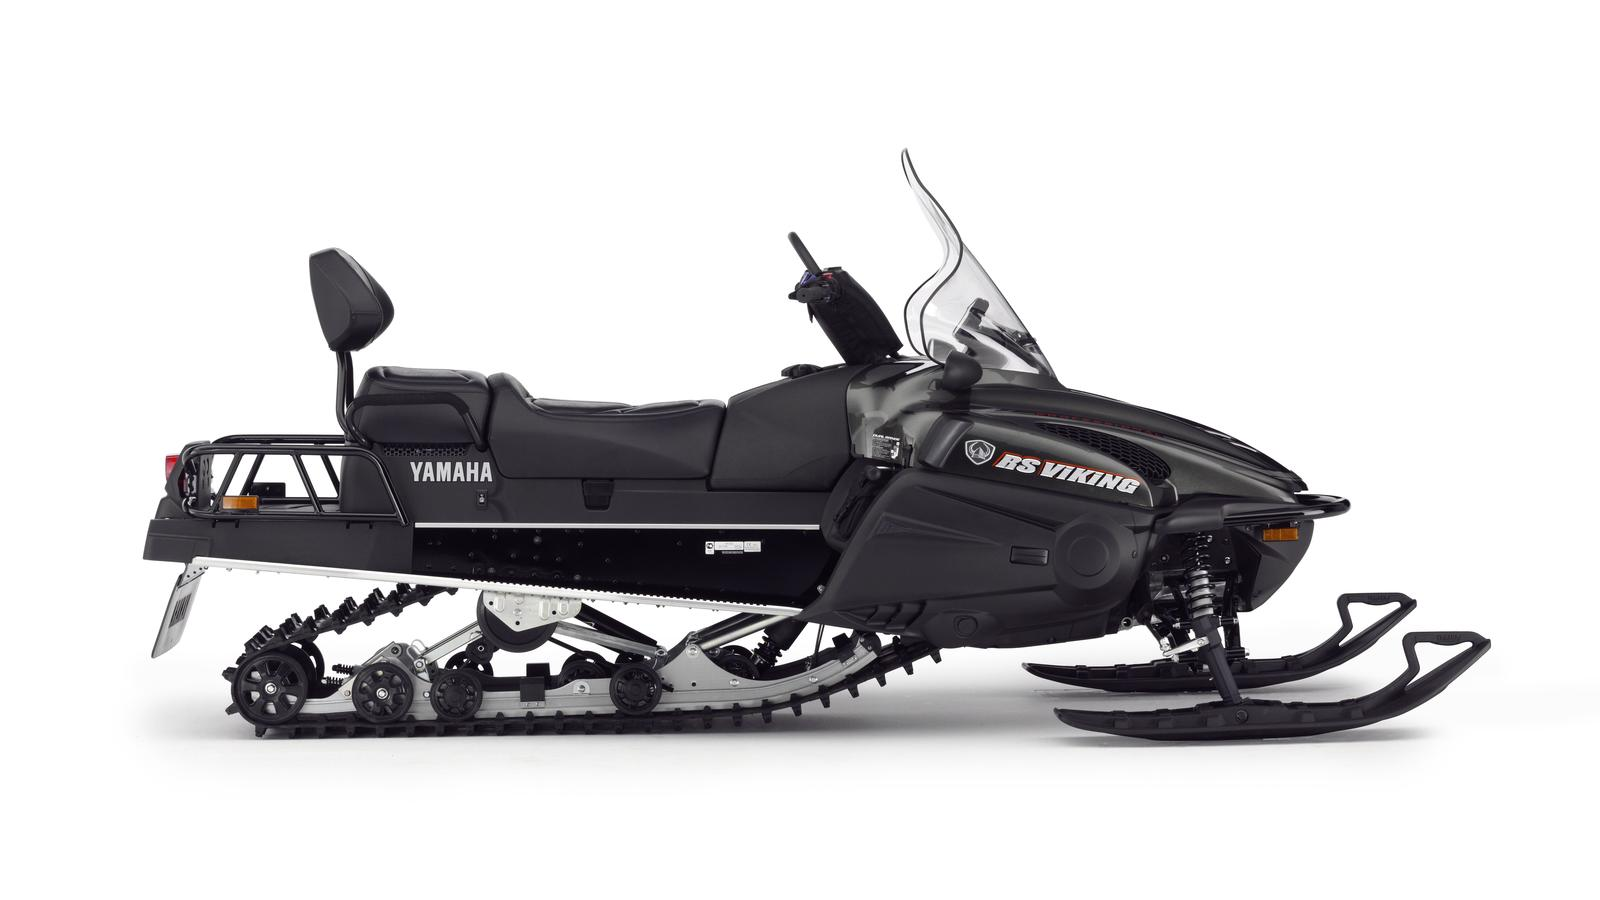 2013 Yamaha RS Viking Professional | Top Speed